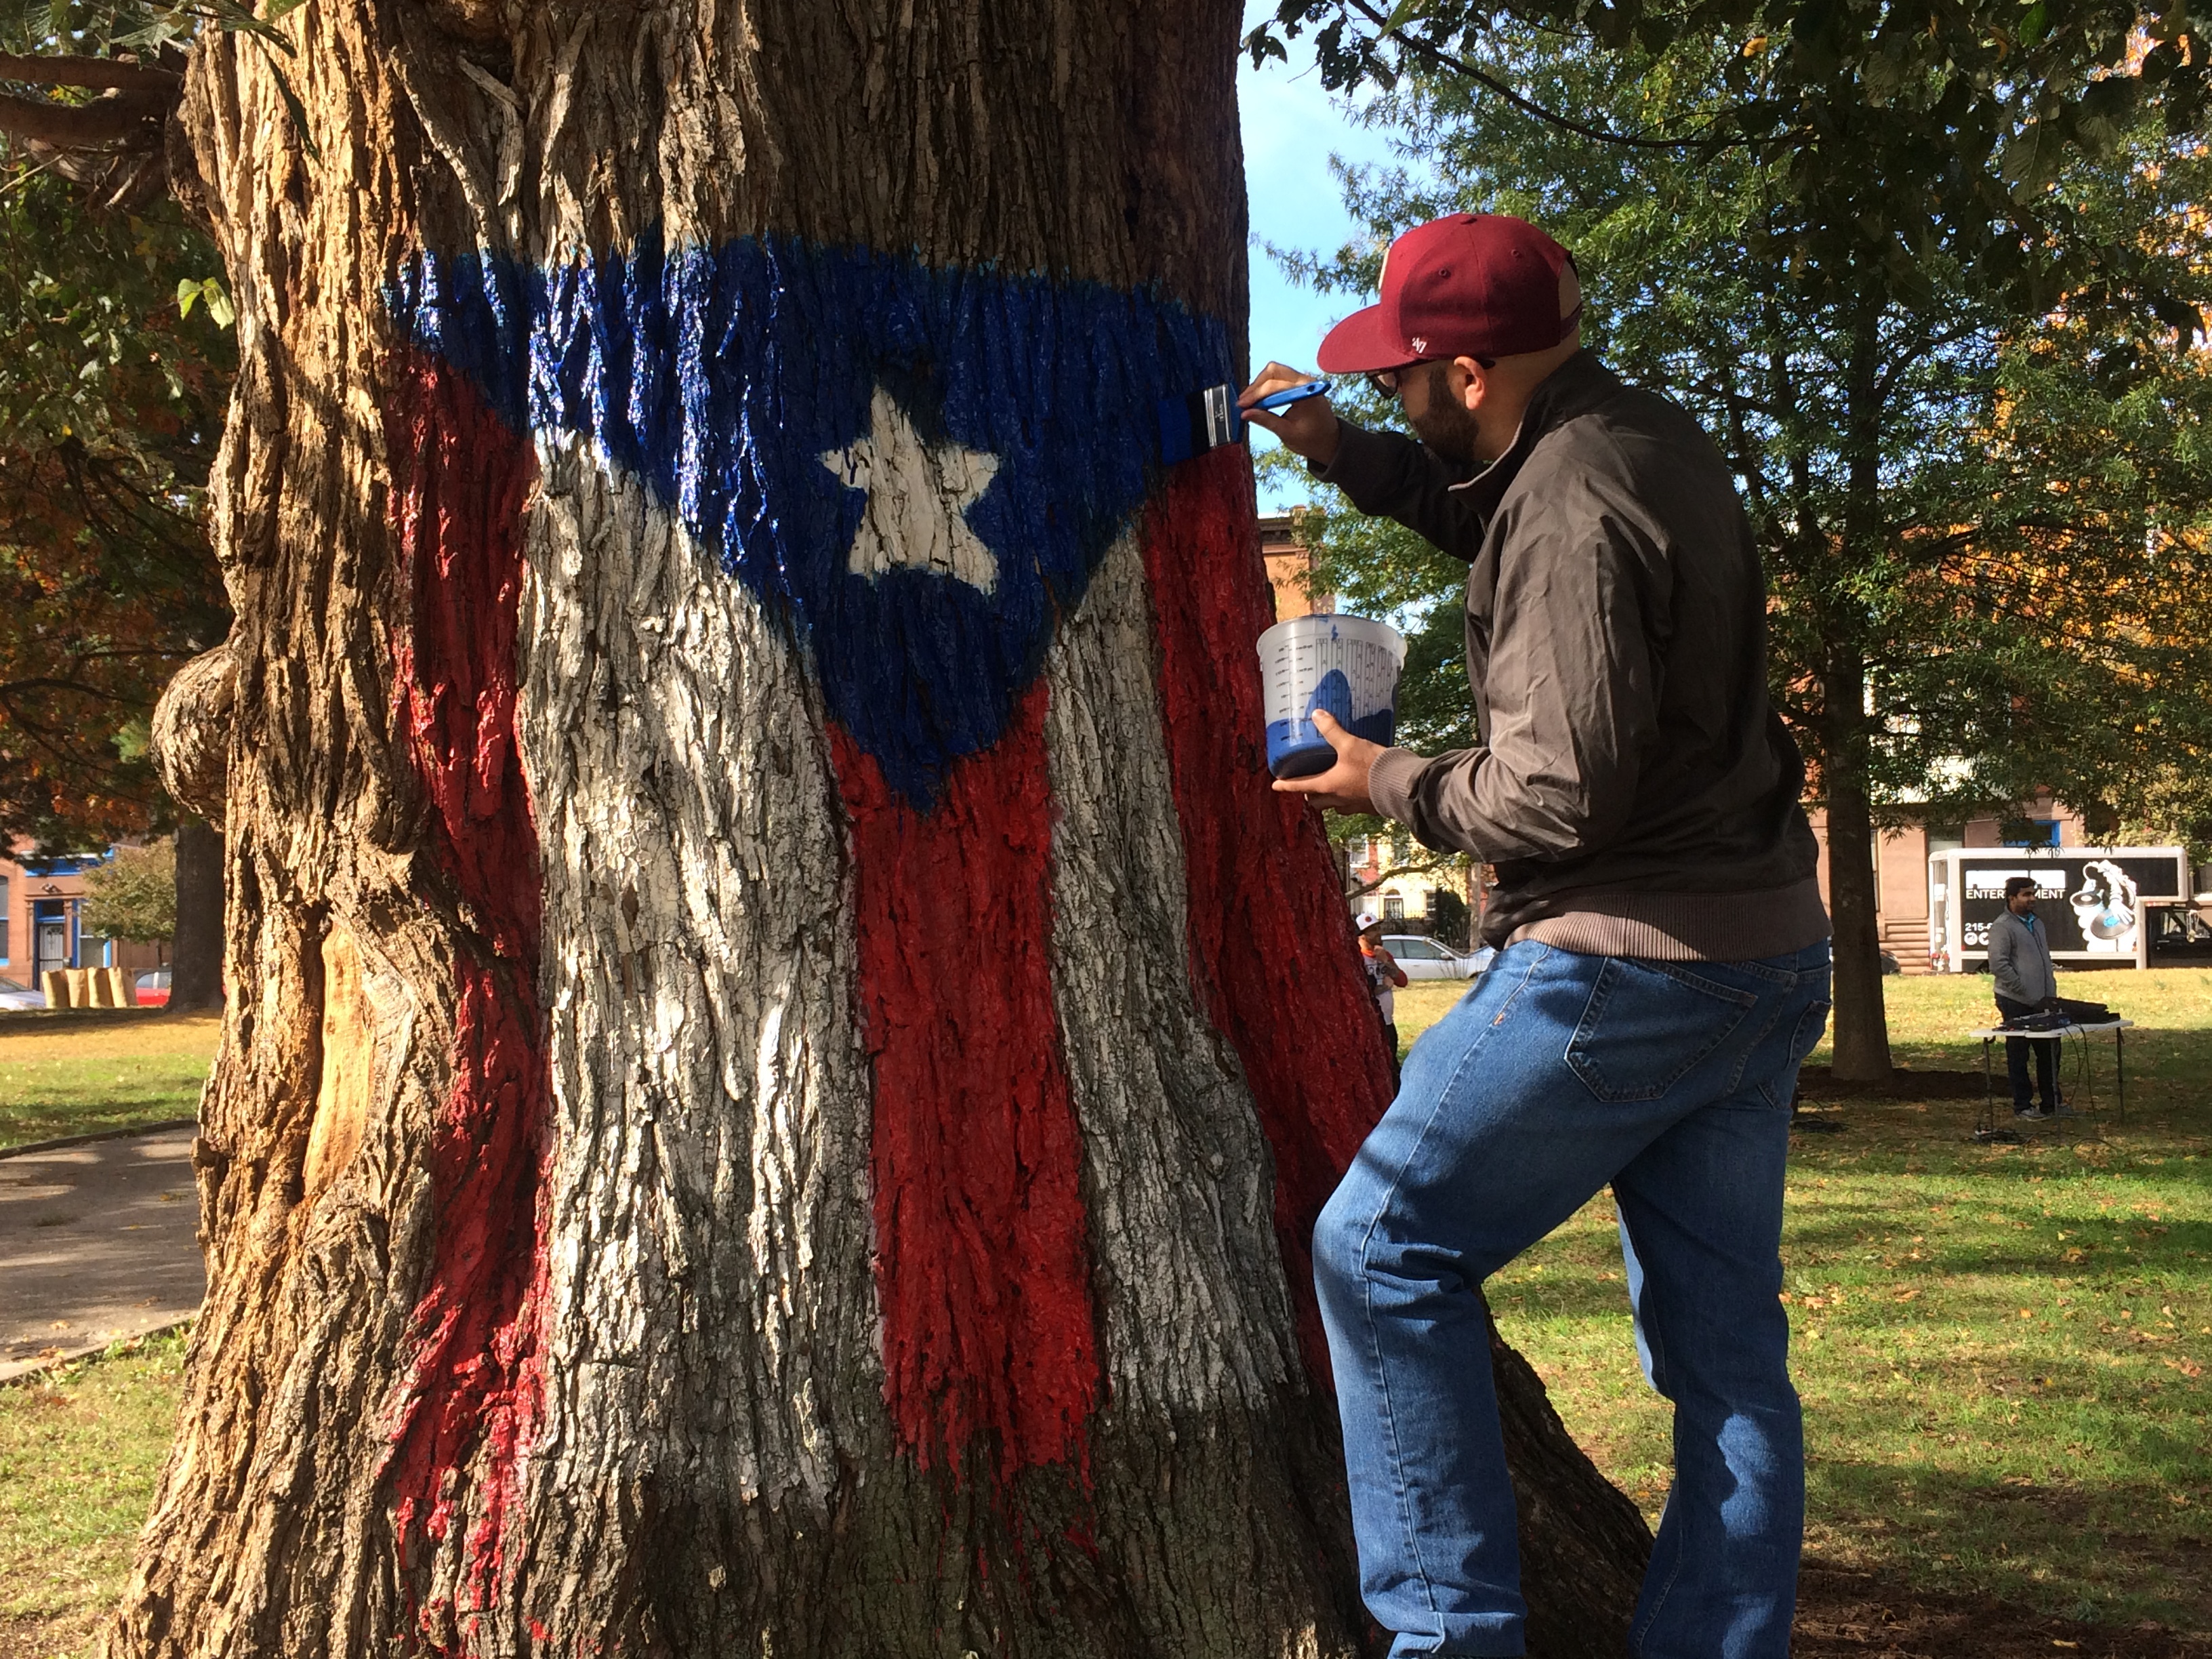 Philadelphia is actively helping rebuilt Puerto Rico. In the picture, man retouching Puerto Rican flag in Norris Square Park.